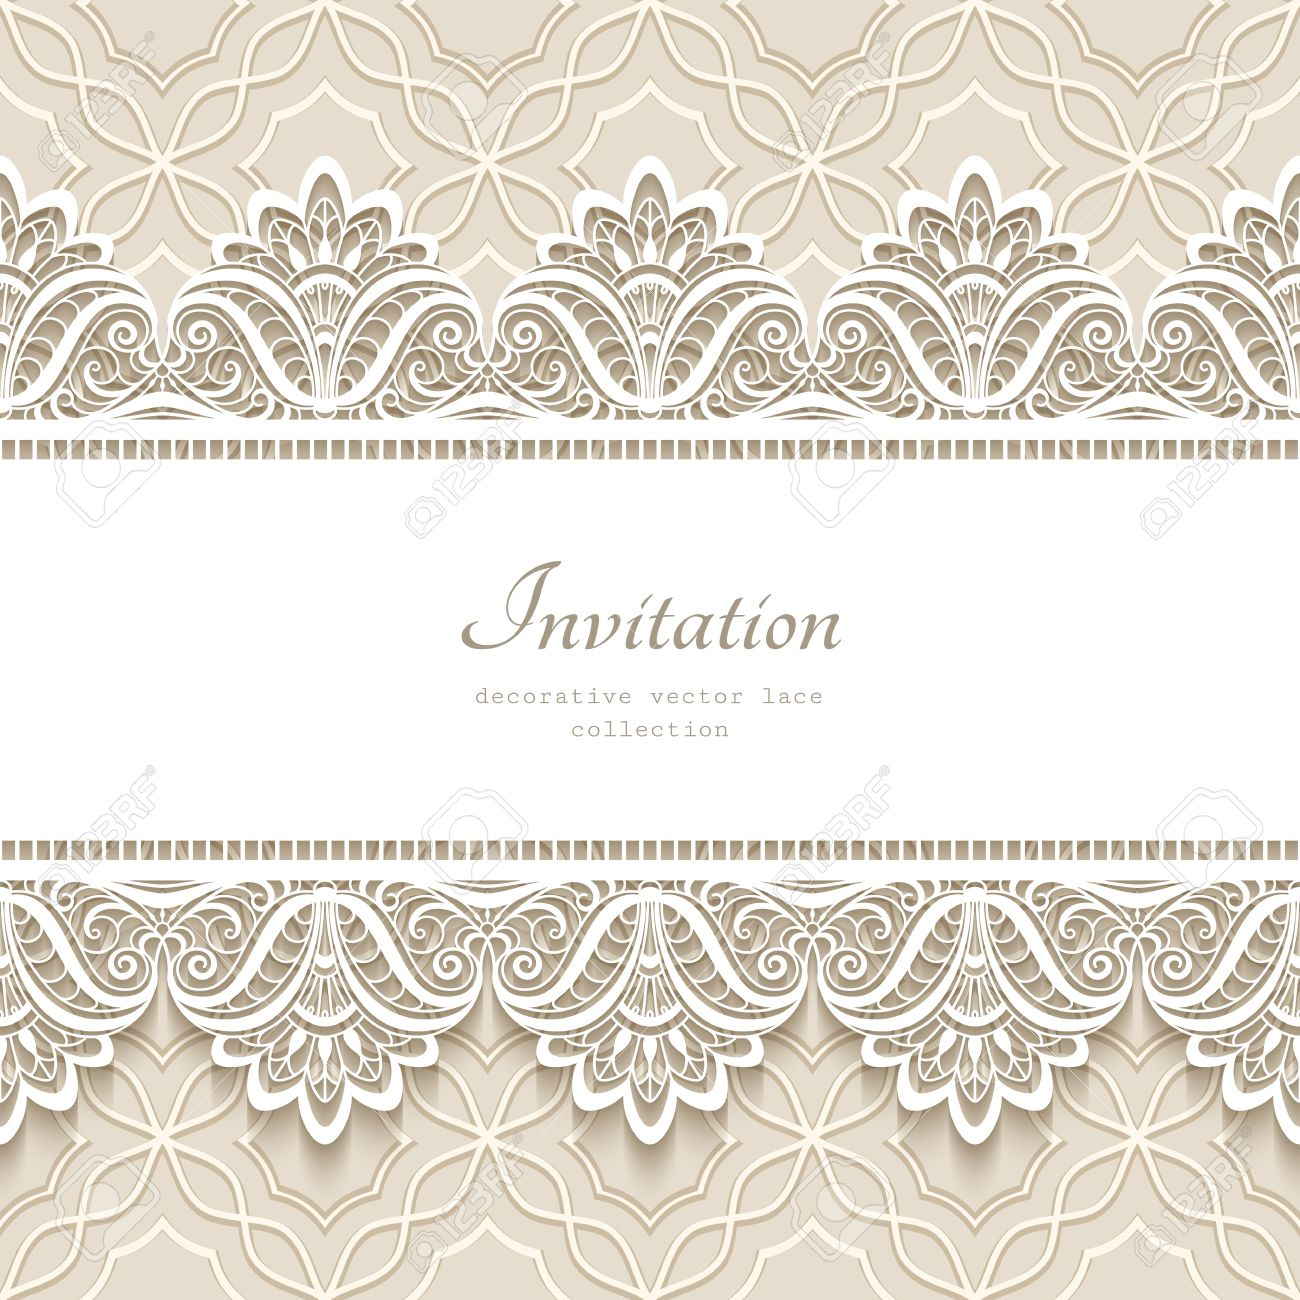 Vintage lace background with seamless border ornament, elegant greeting card or wedding invitation template - 50933710